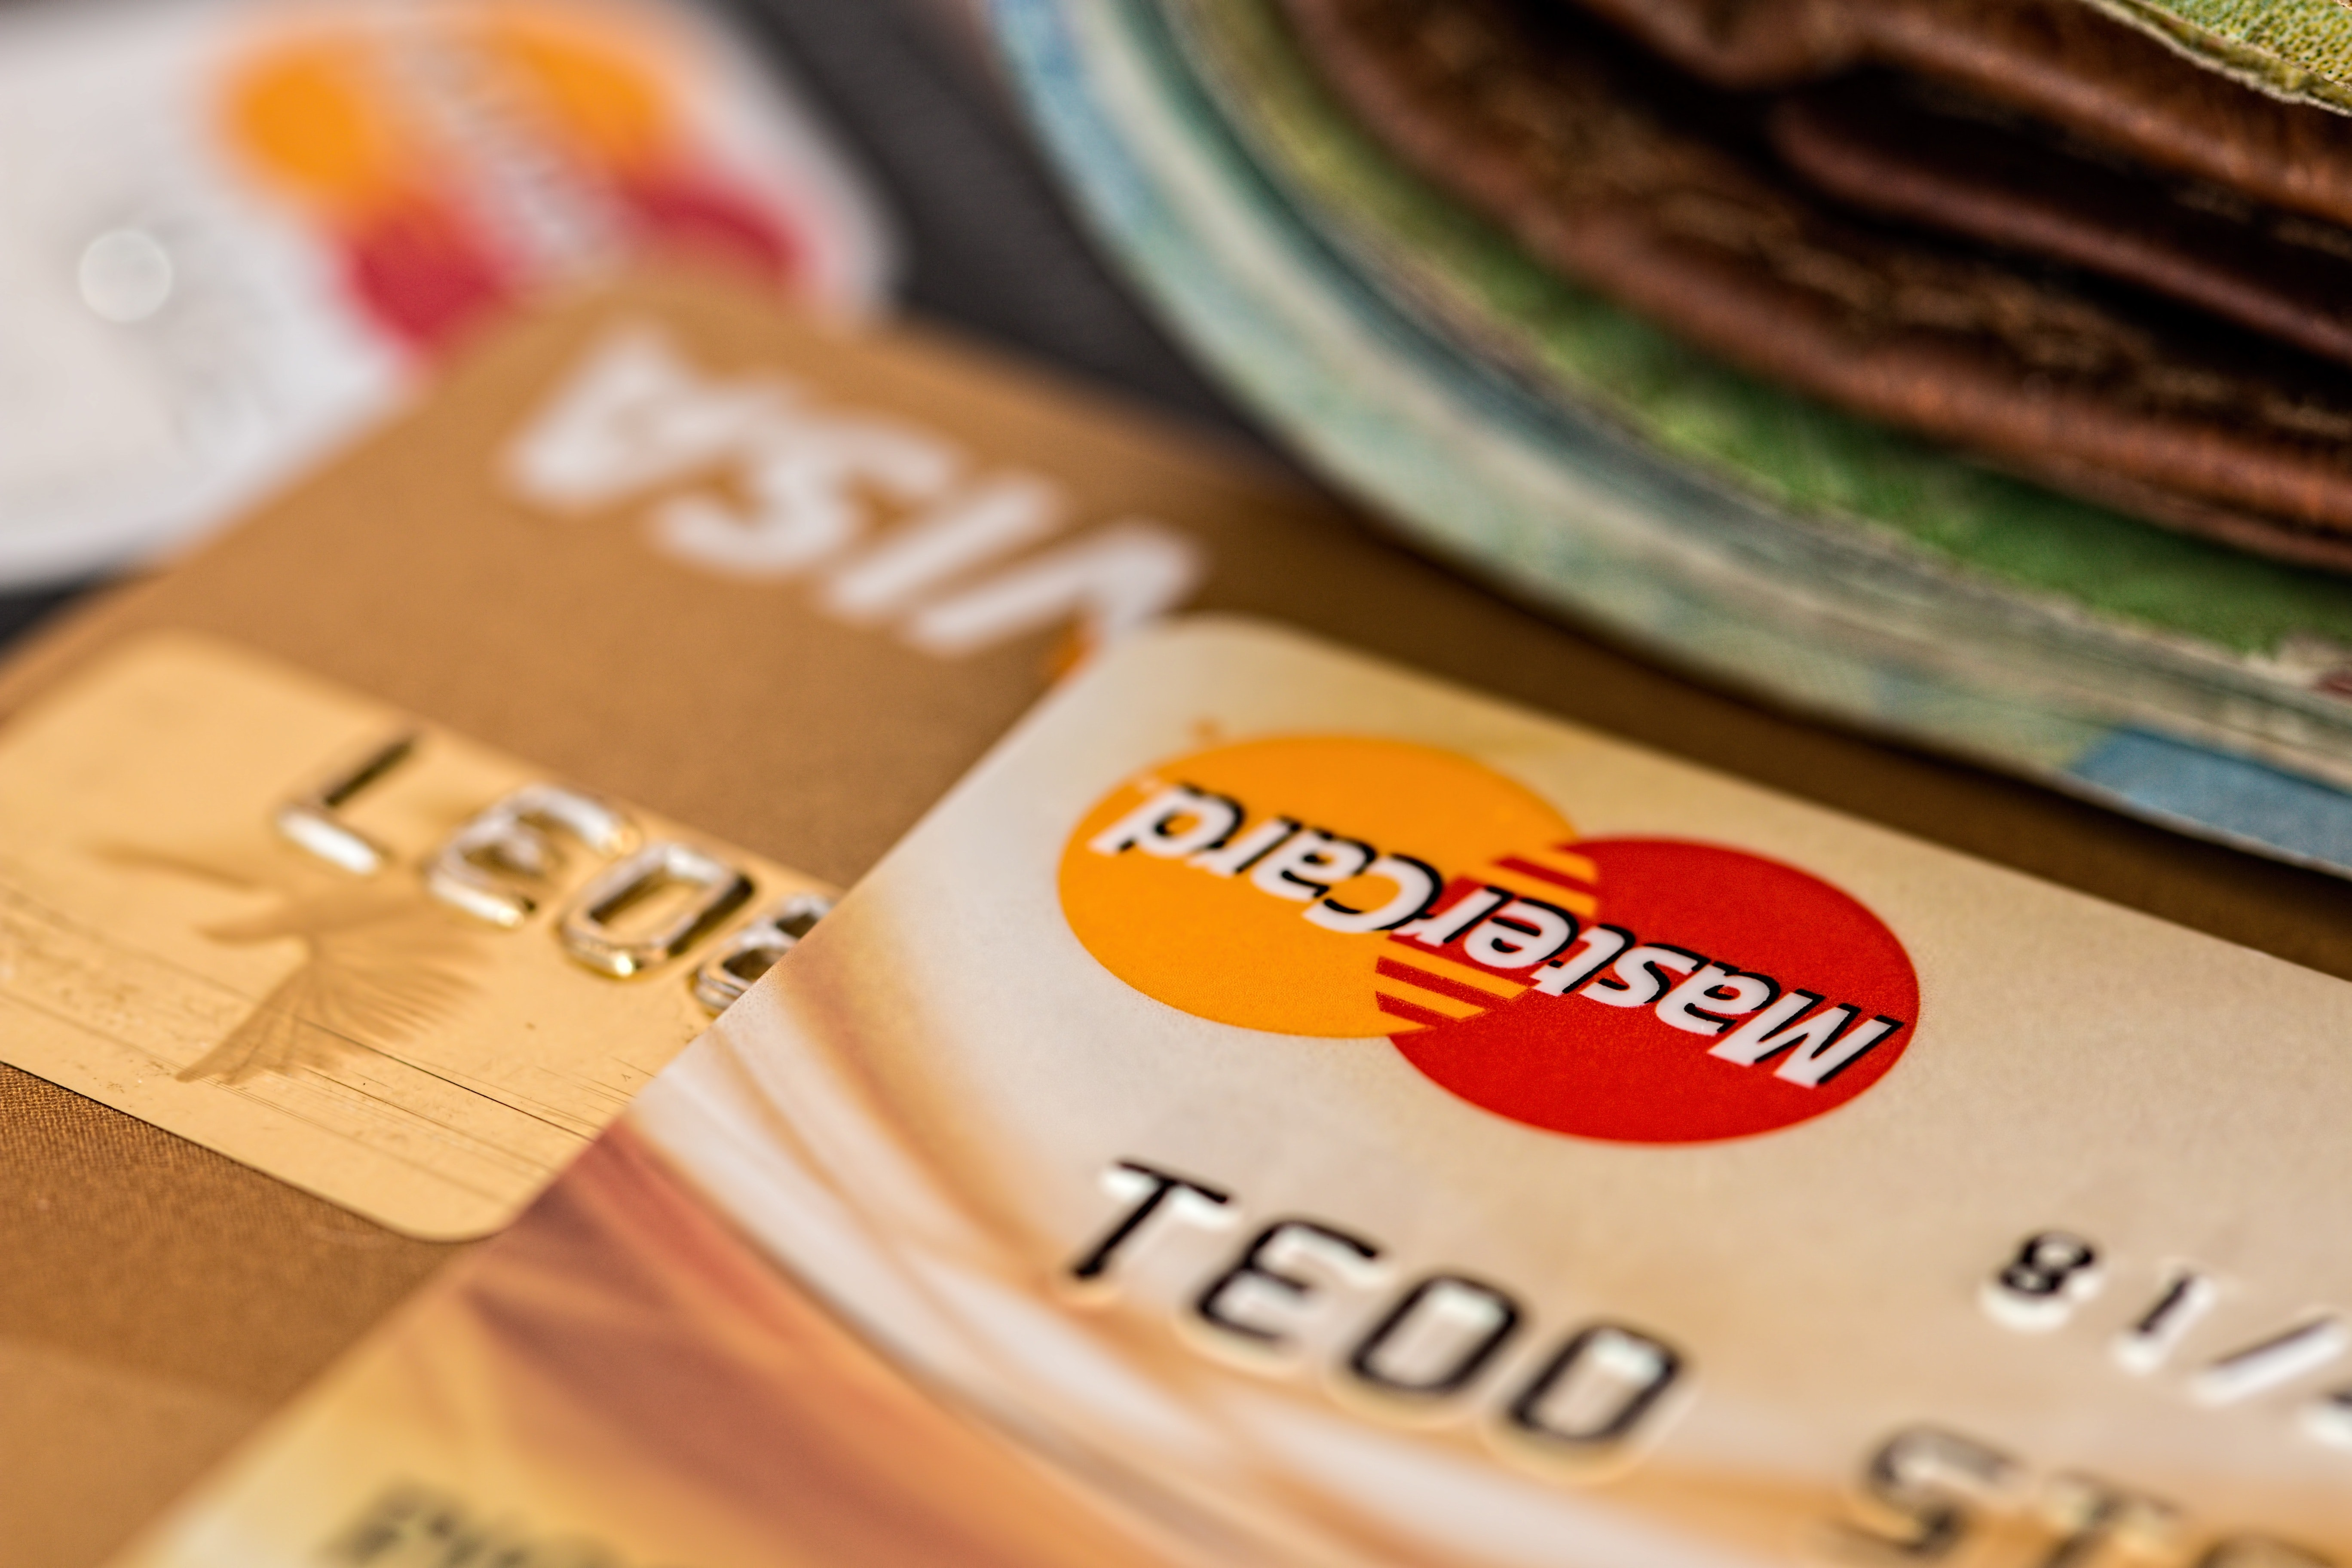 Close up of credit cards, including MasterCard and Visa